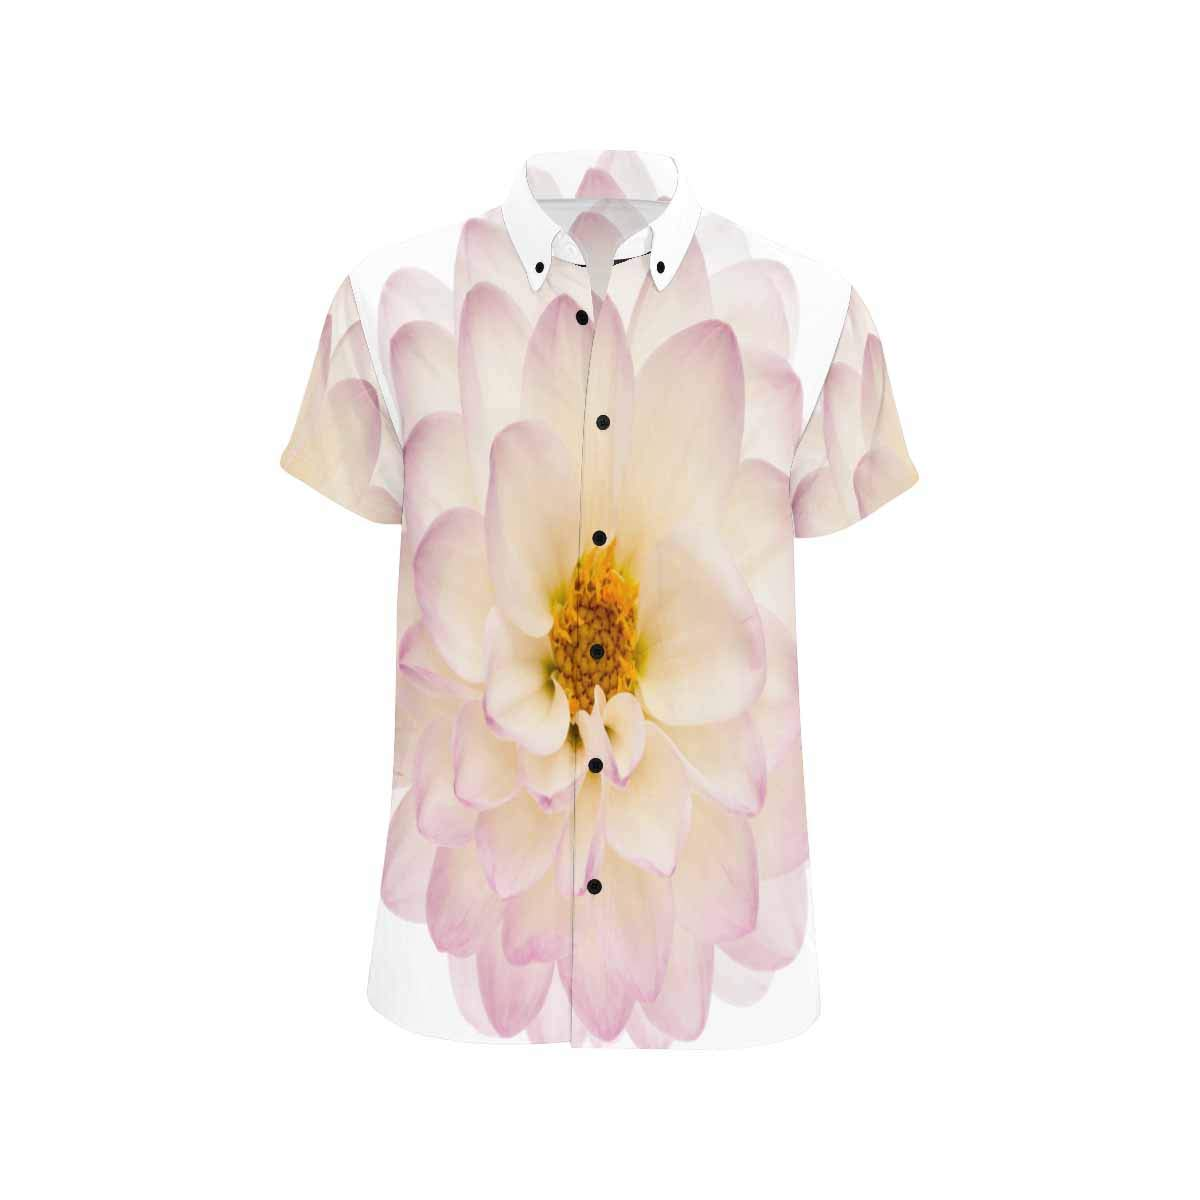 InterestPrint Fashion Printed White and Black Flowers Stand Collar Casual T-Shirt Beach Tops S-5XL